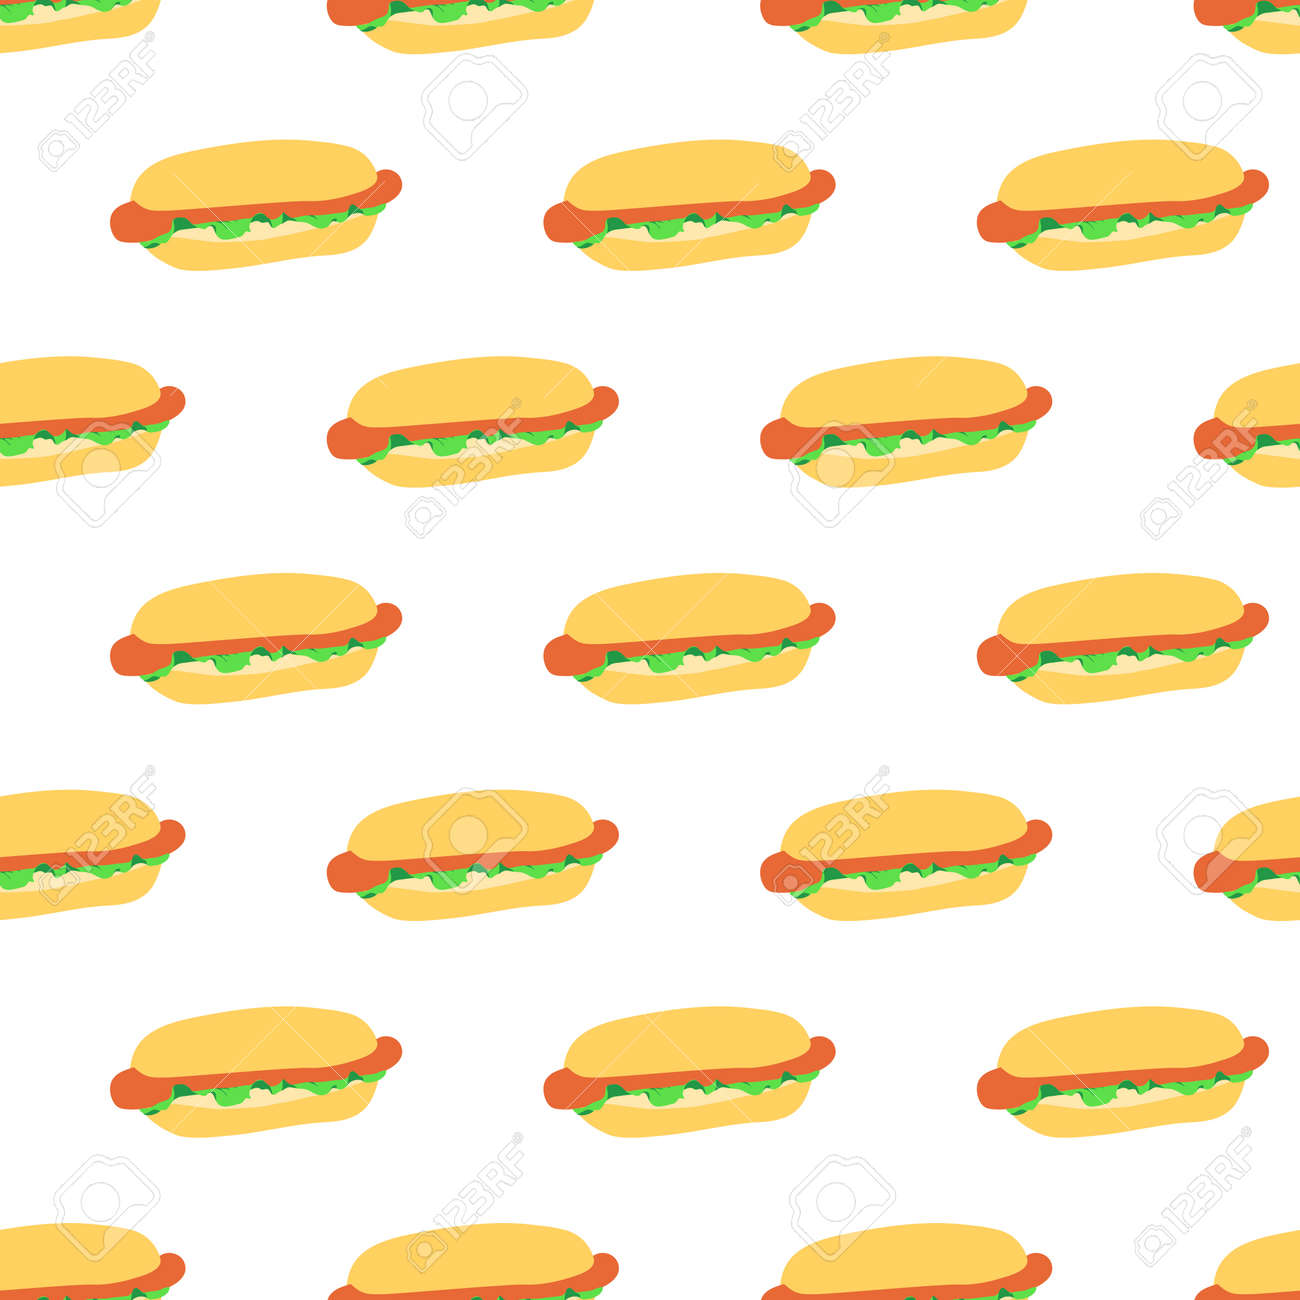 Seamless Pattern With Hot Dogs On White Background Good Design